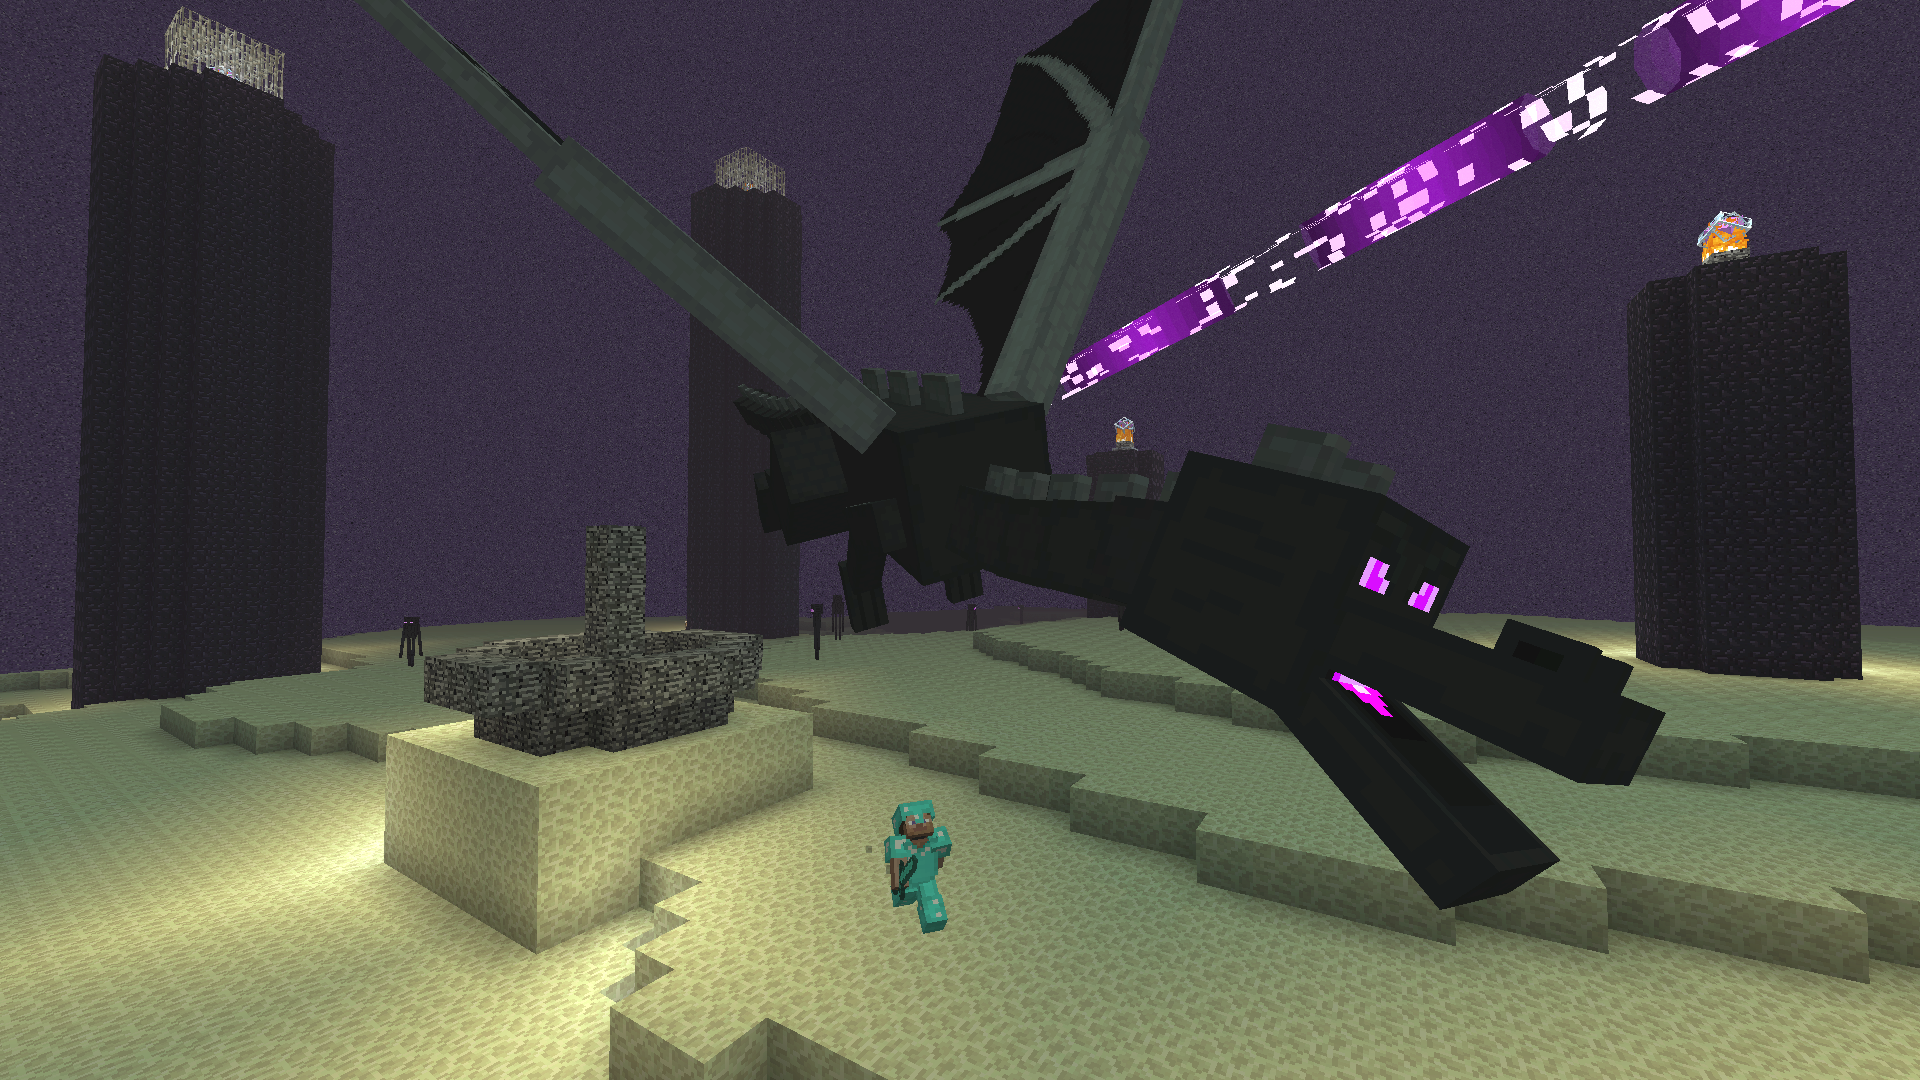 The Ender Dragon, Minecraft, Windows 10